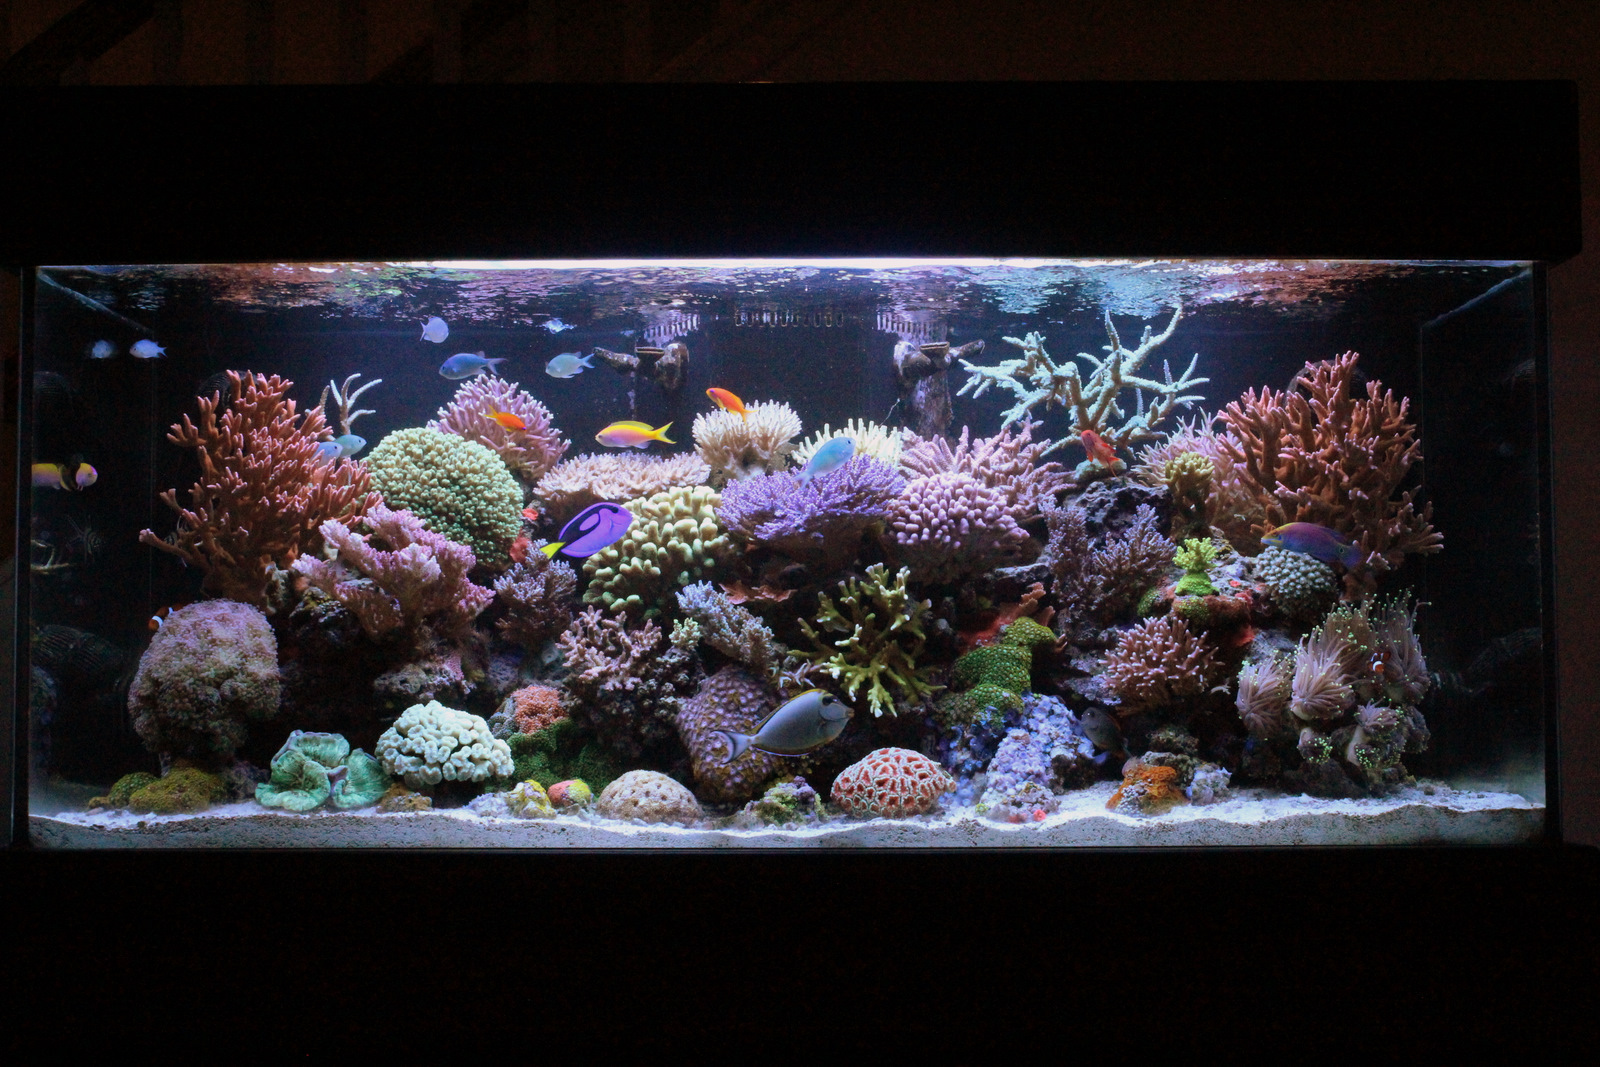 Socalireefs community chris023 featured reef tank for 150 gallon fish tank